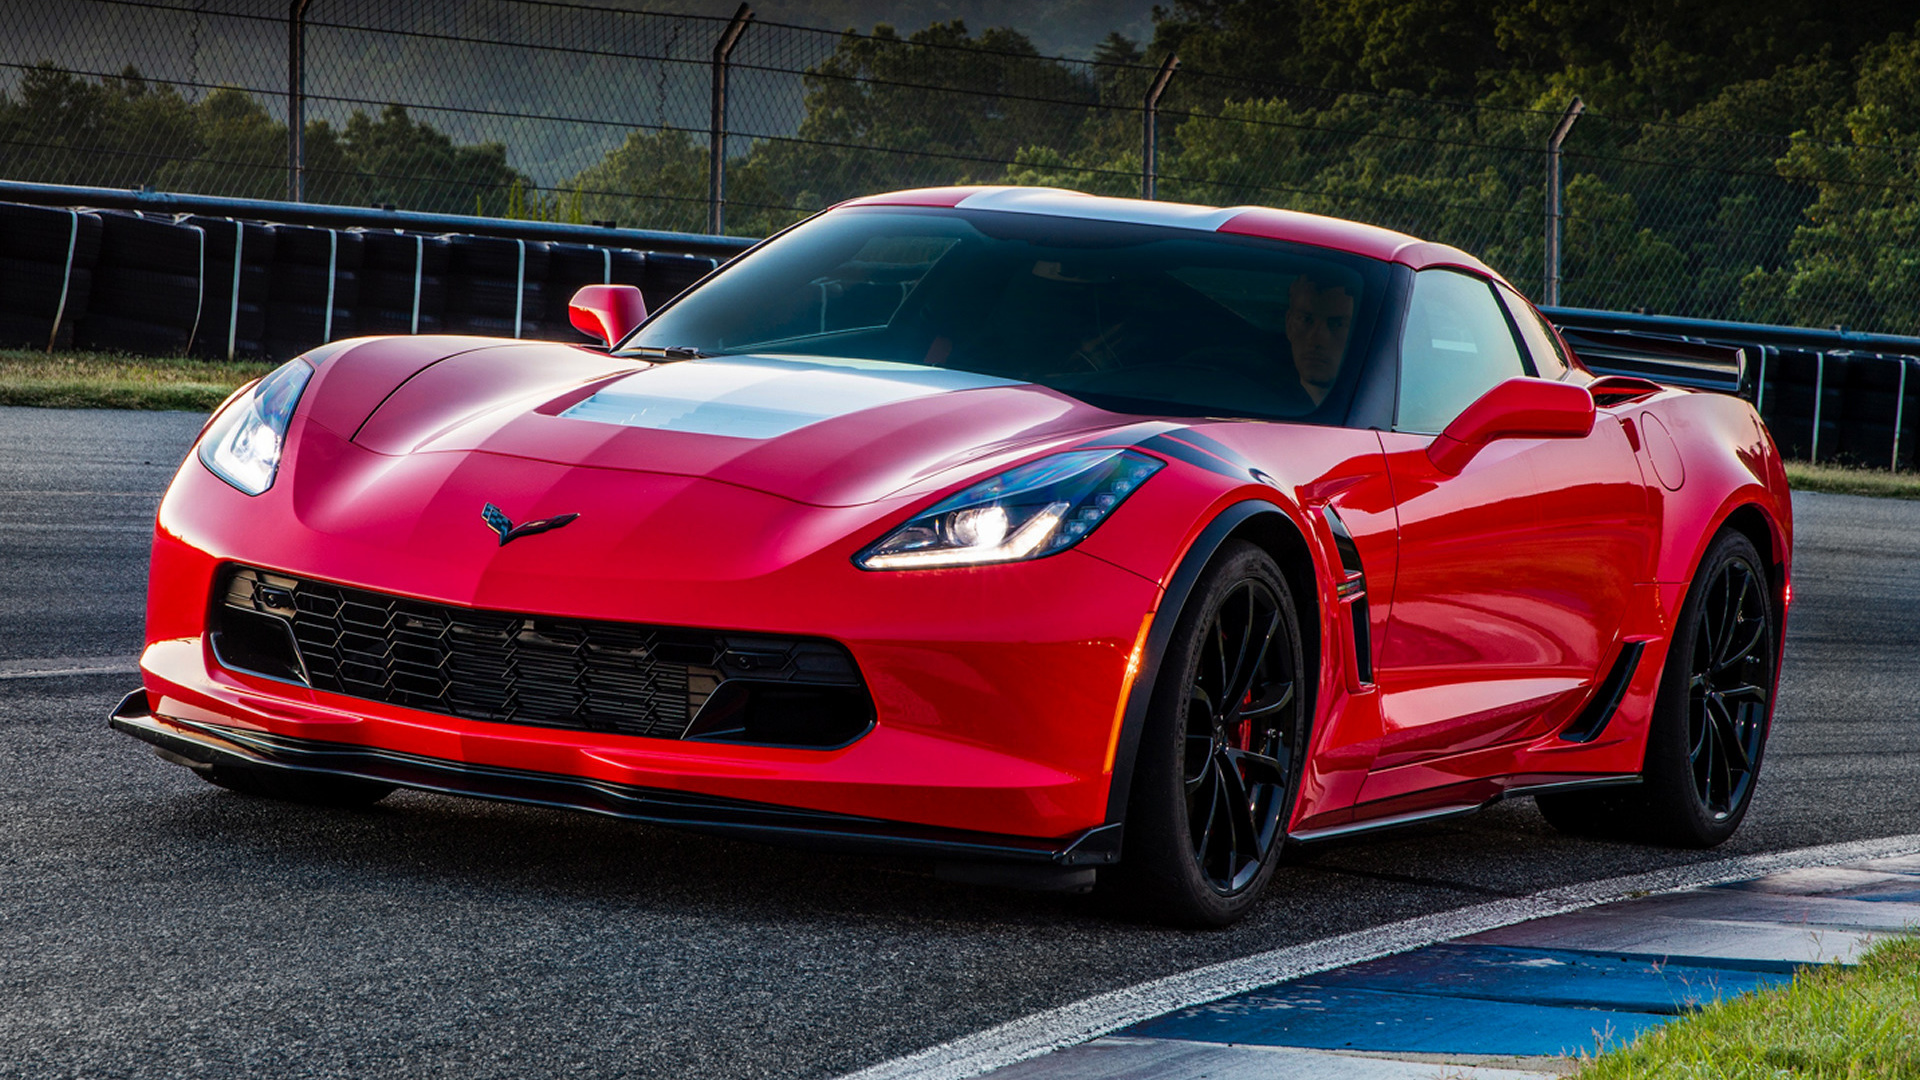 Chevrolet Corvette Grand Sport (2017) Wallpapers and HD ...